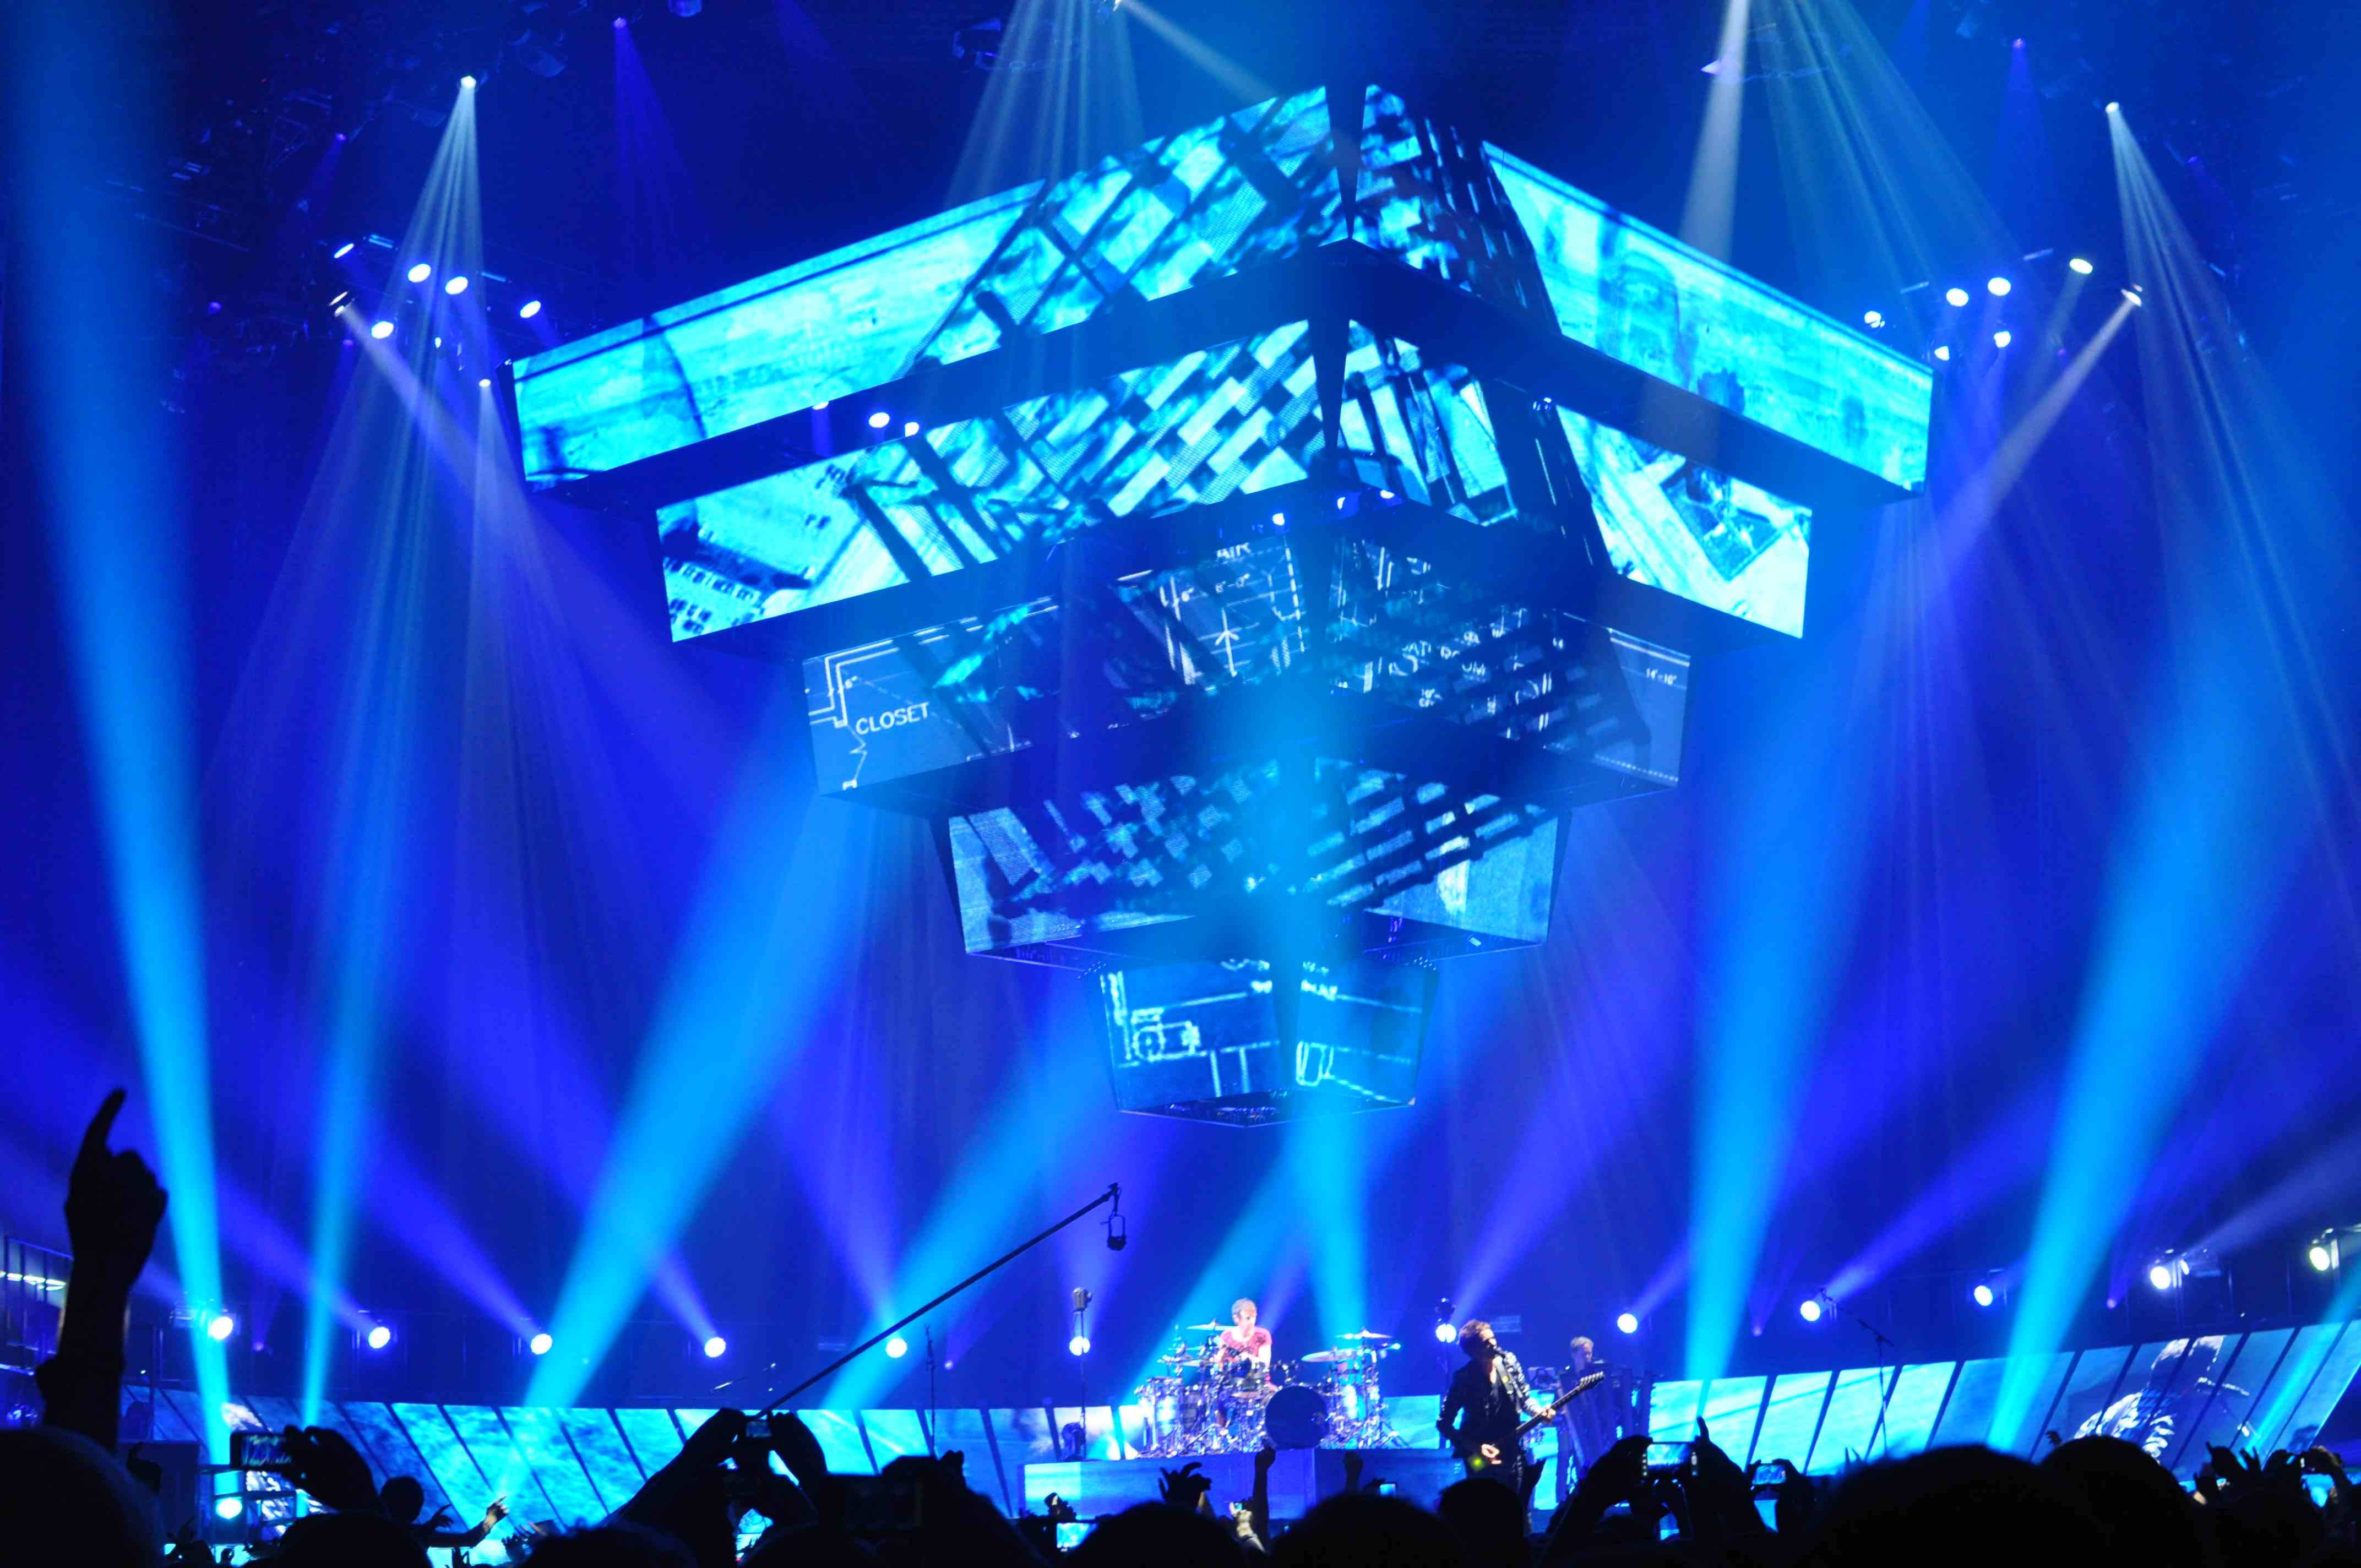 Muse 2nd law tour stage design 2